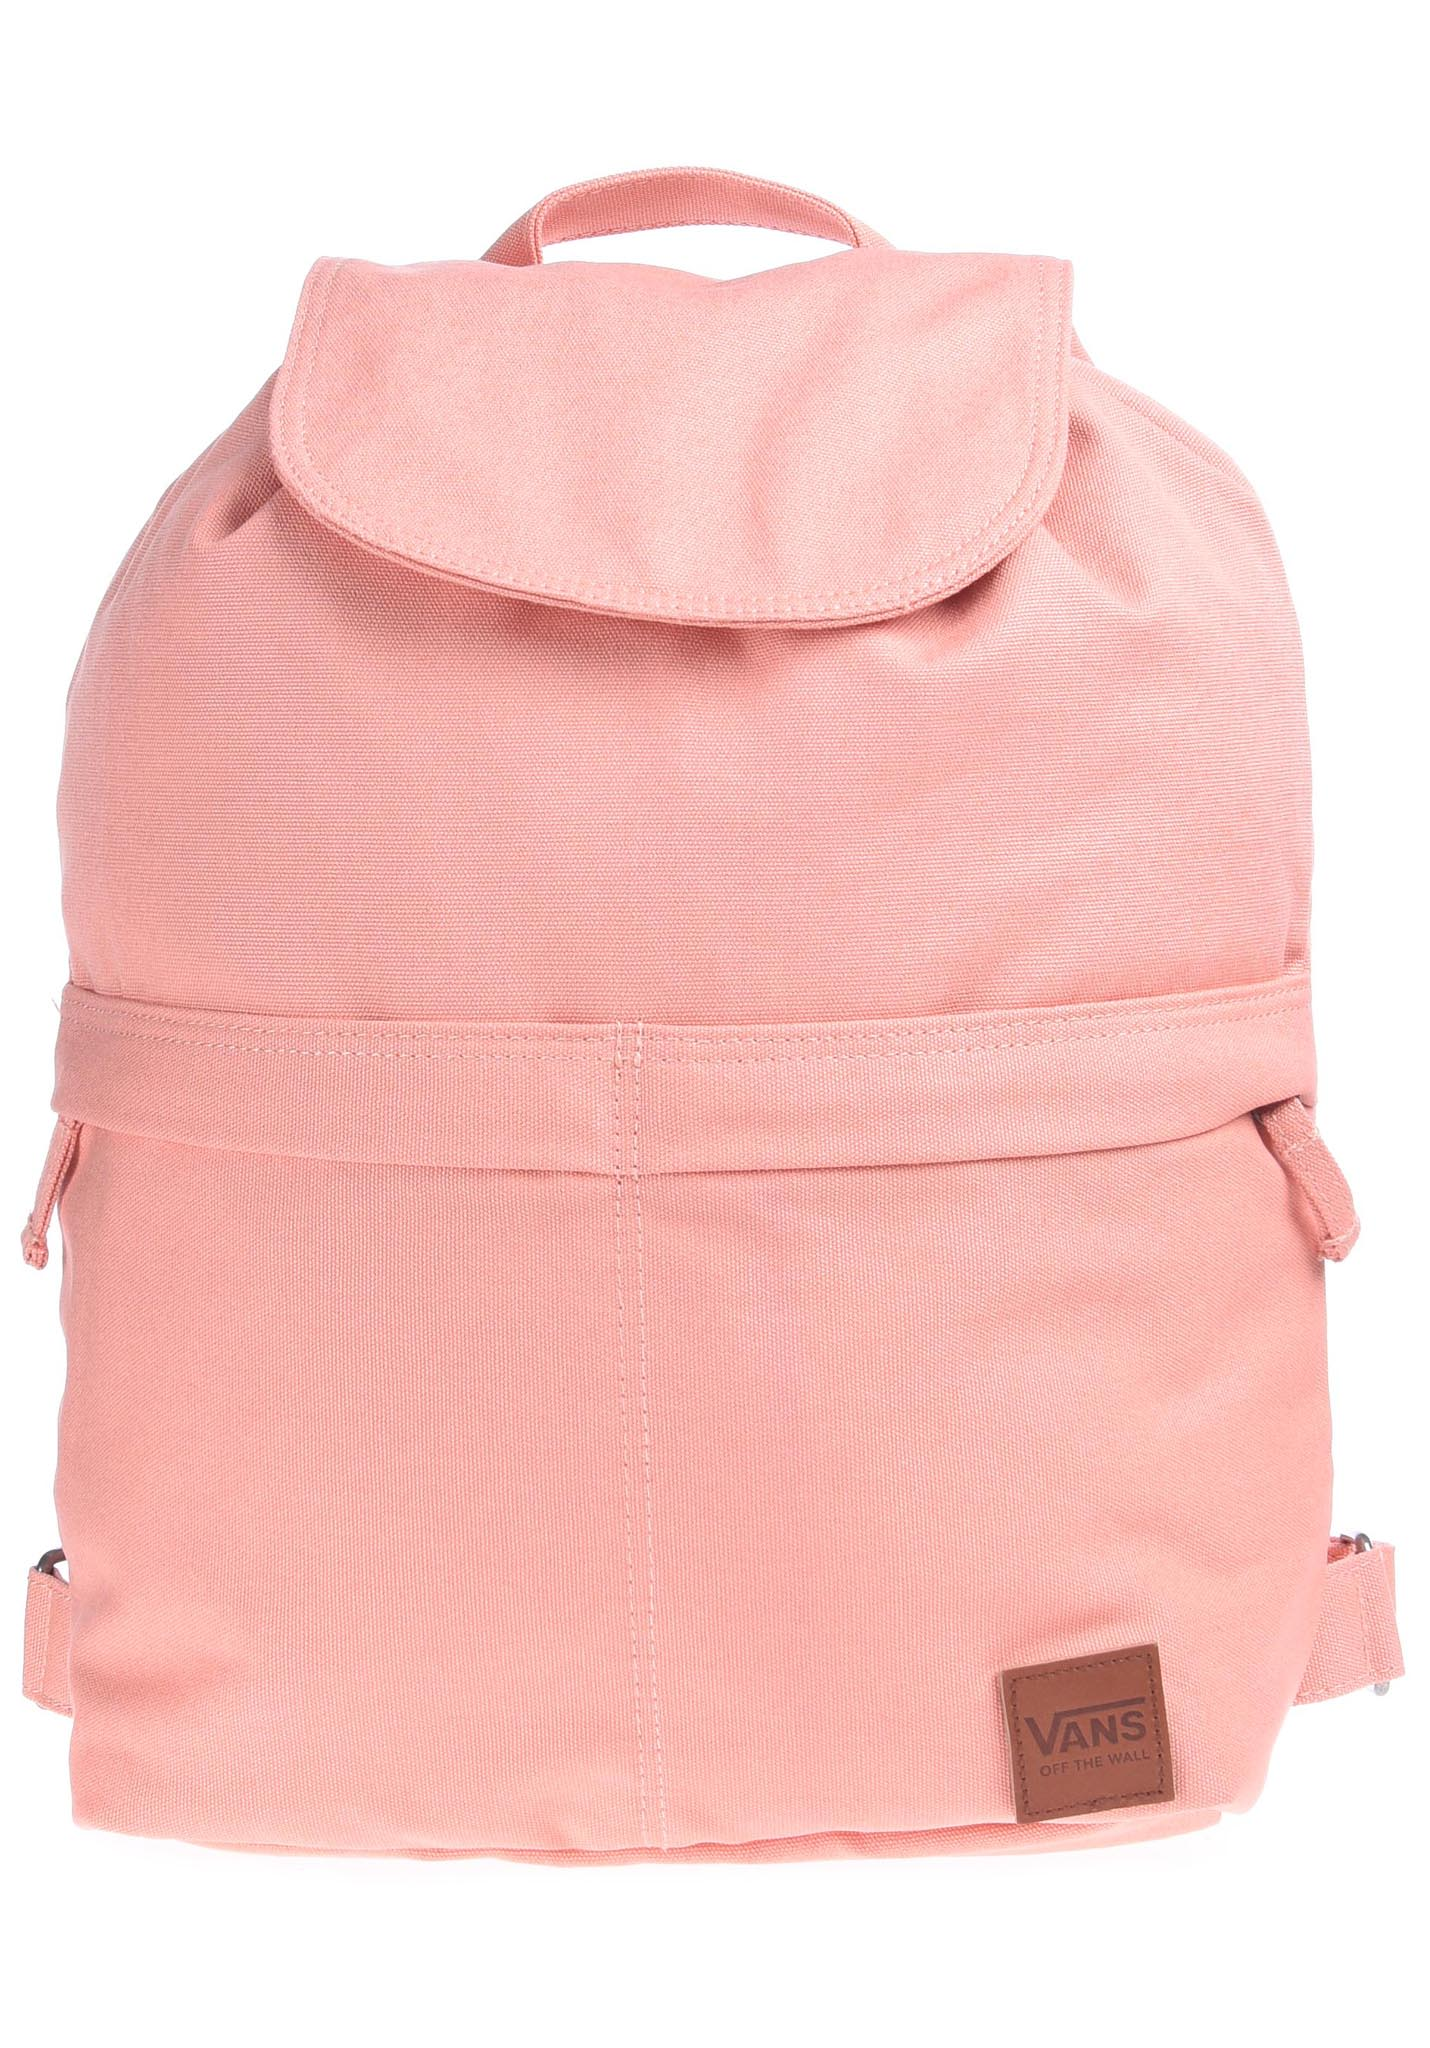 Vans Lakeside - Backpack for Women - Pink - Planet Sports 9389fdf87f